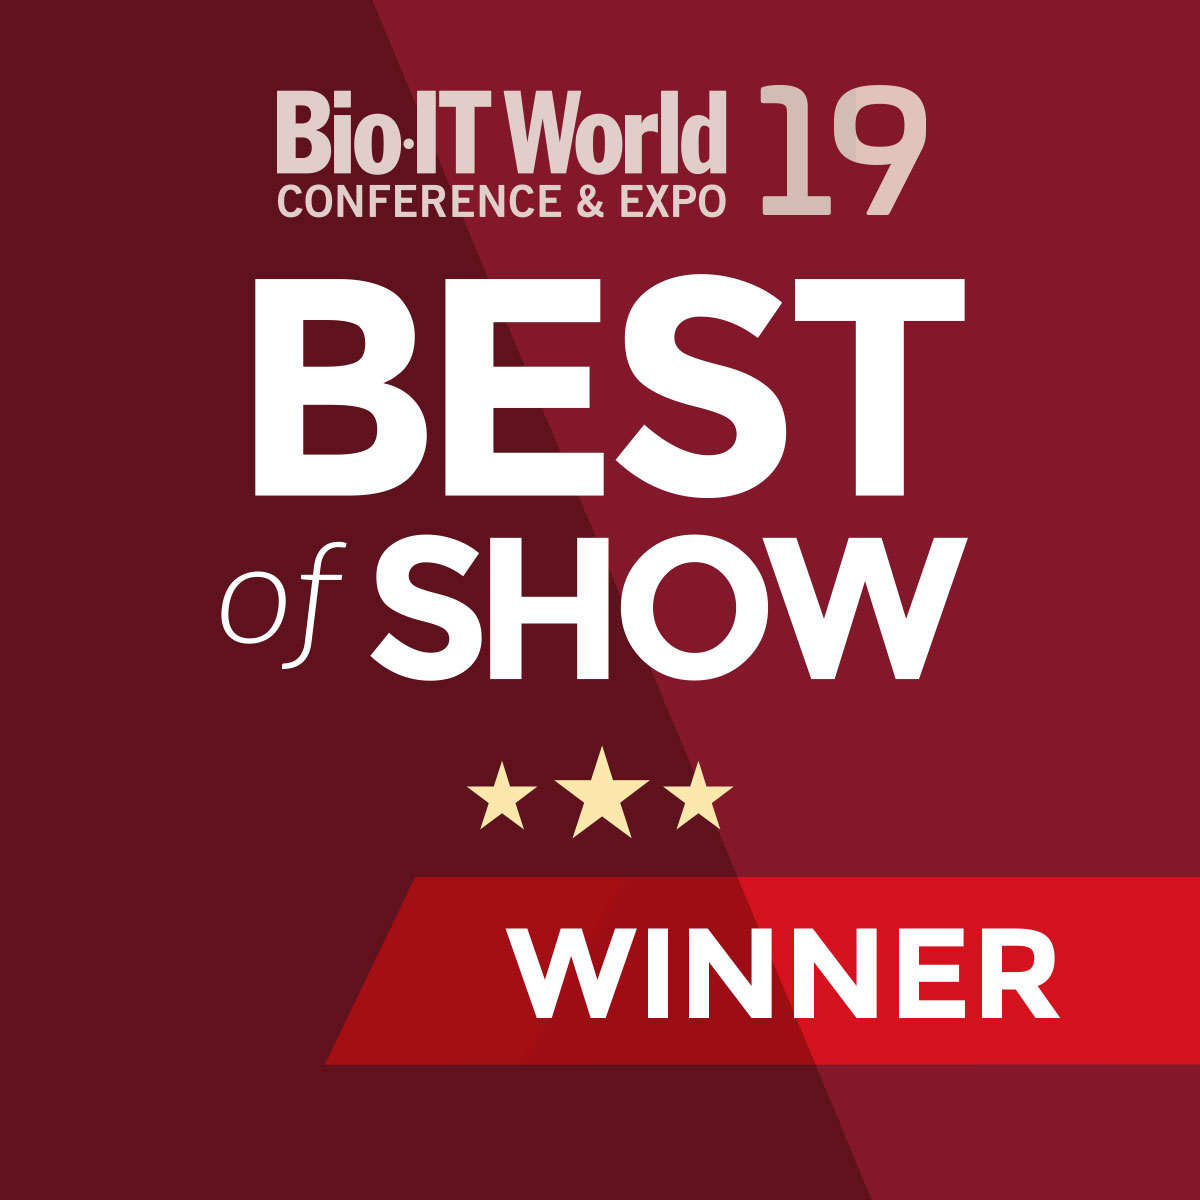 Kanda Wins Patient-Focused Software Best Of Show Award at Bio-IT World 2019